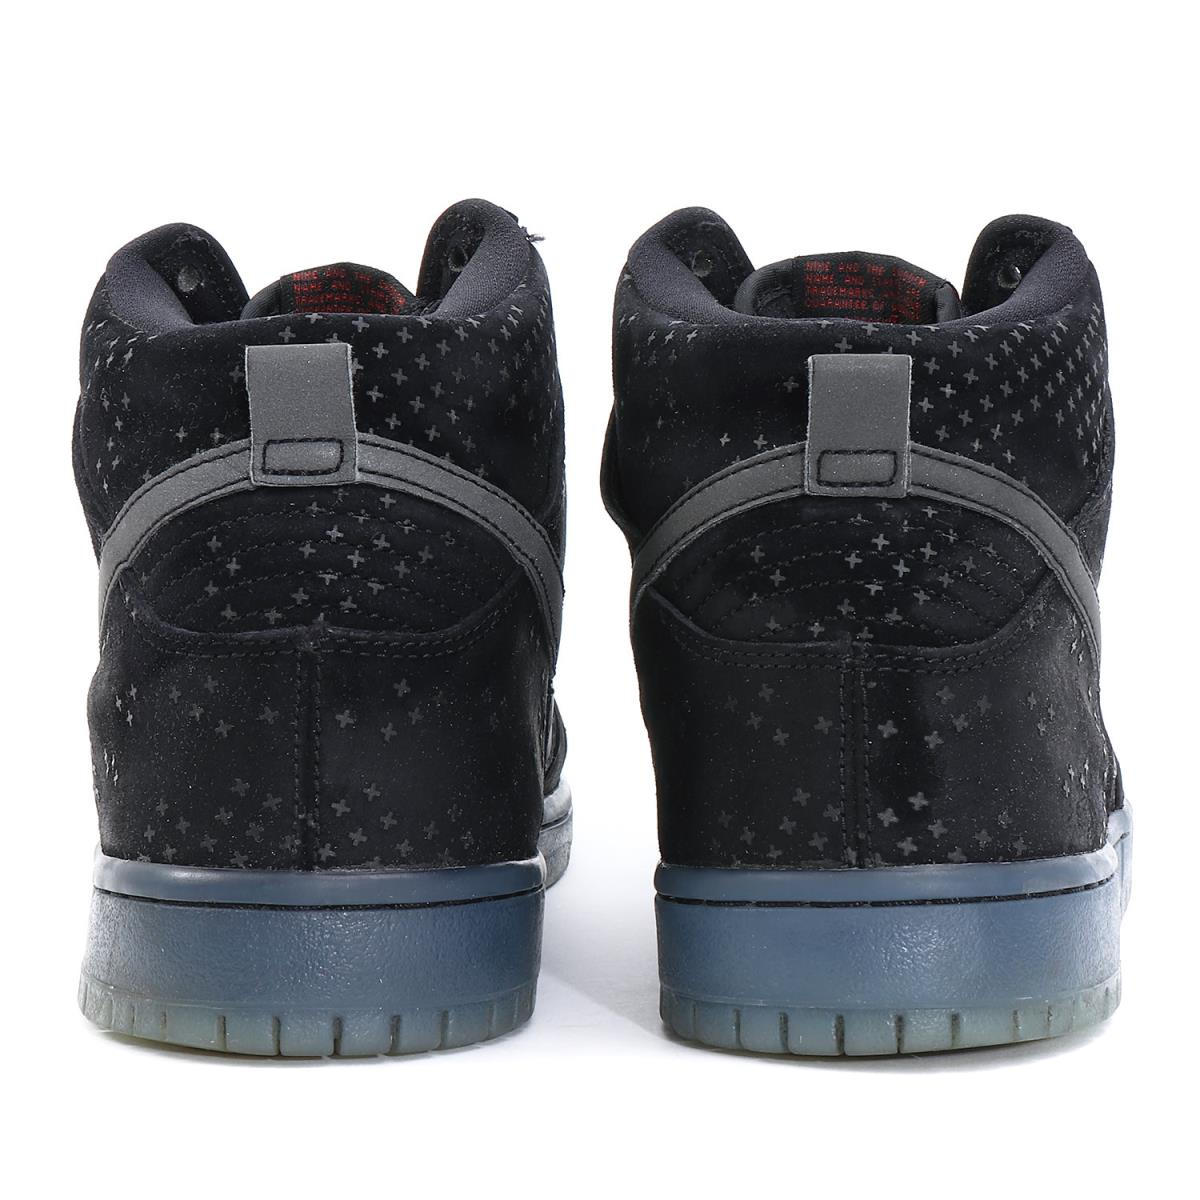 the best attitude 43dc6 845a1 ... coupon for nike nike x premier dunk high prem flash sb flash pack  806333 001 black